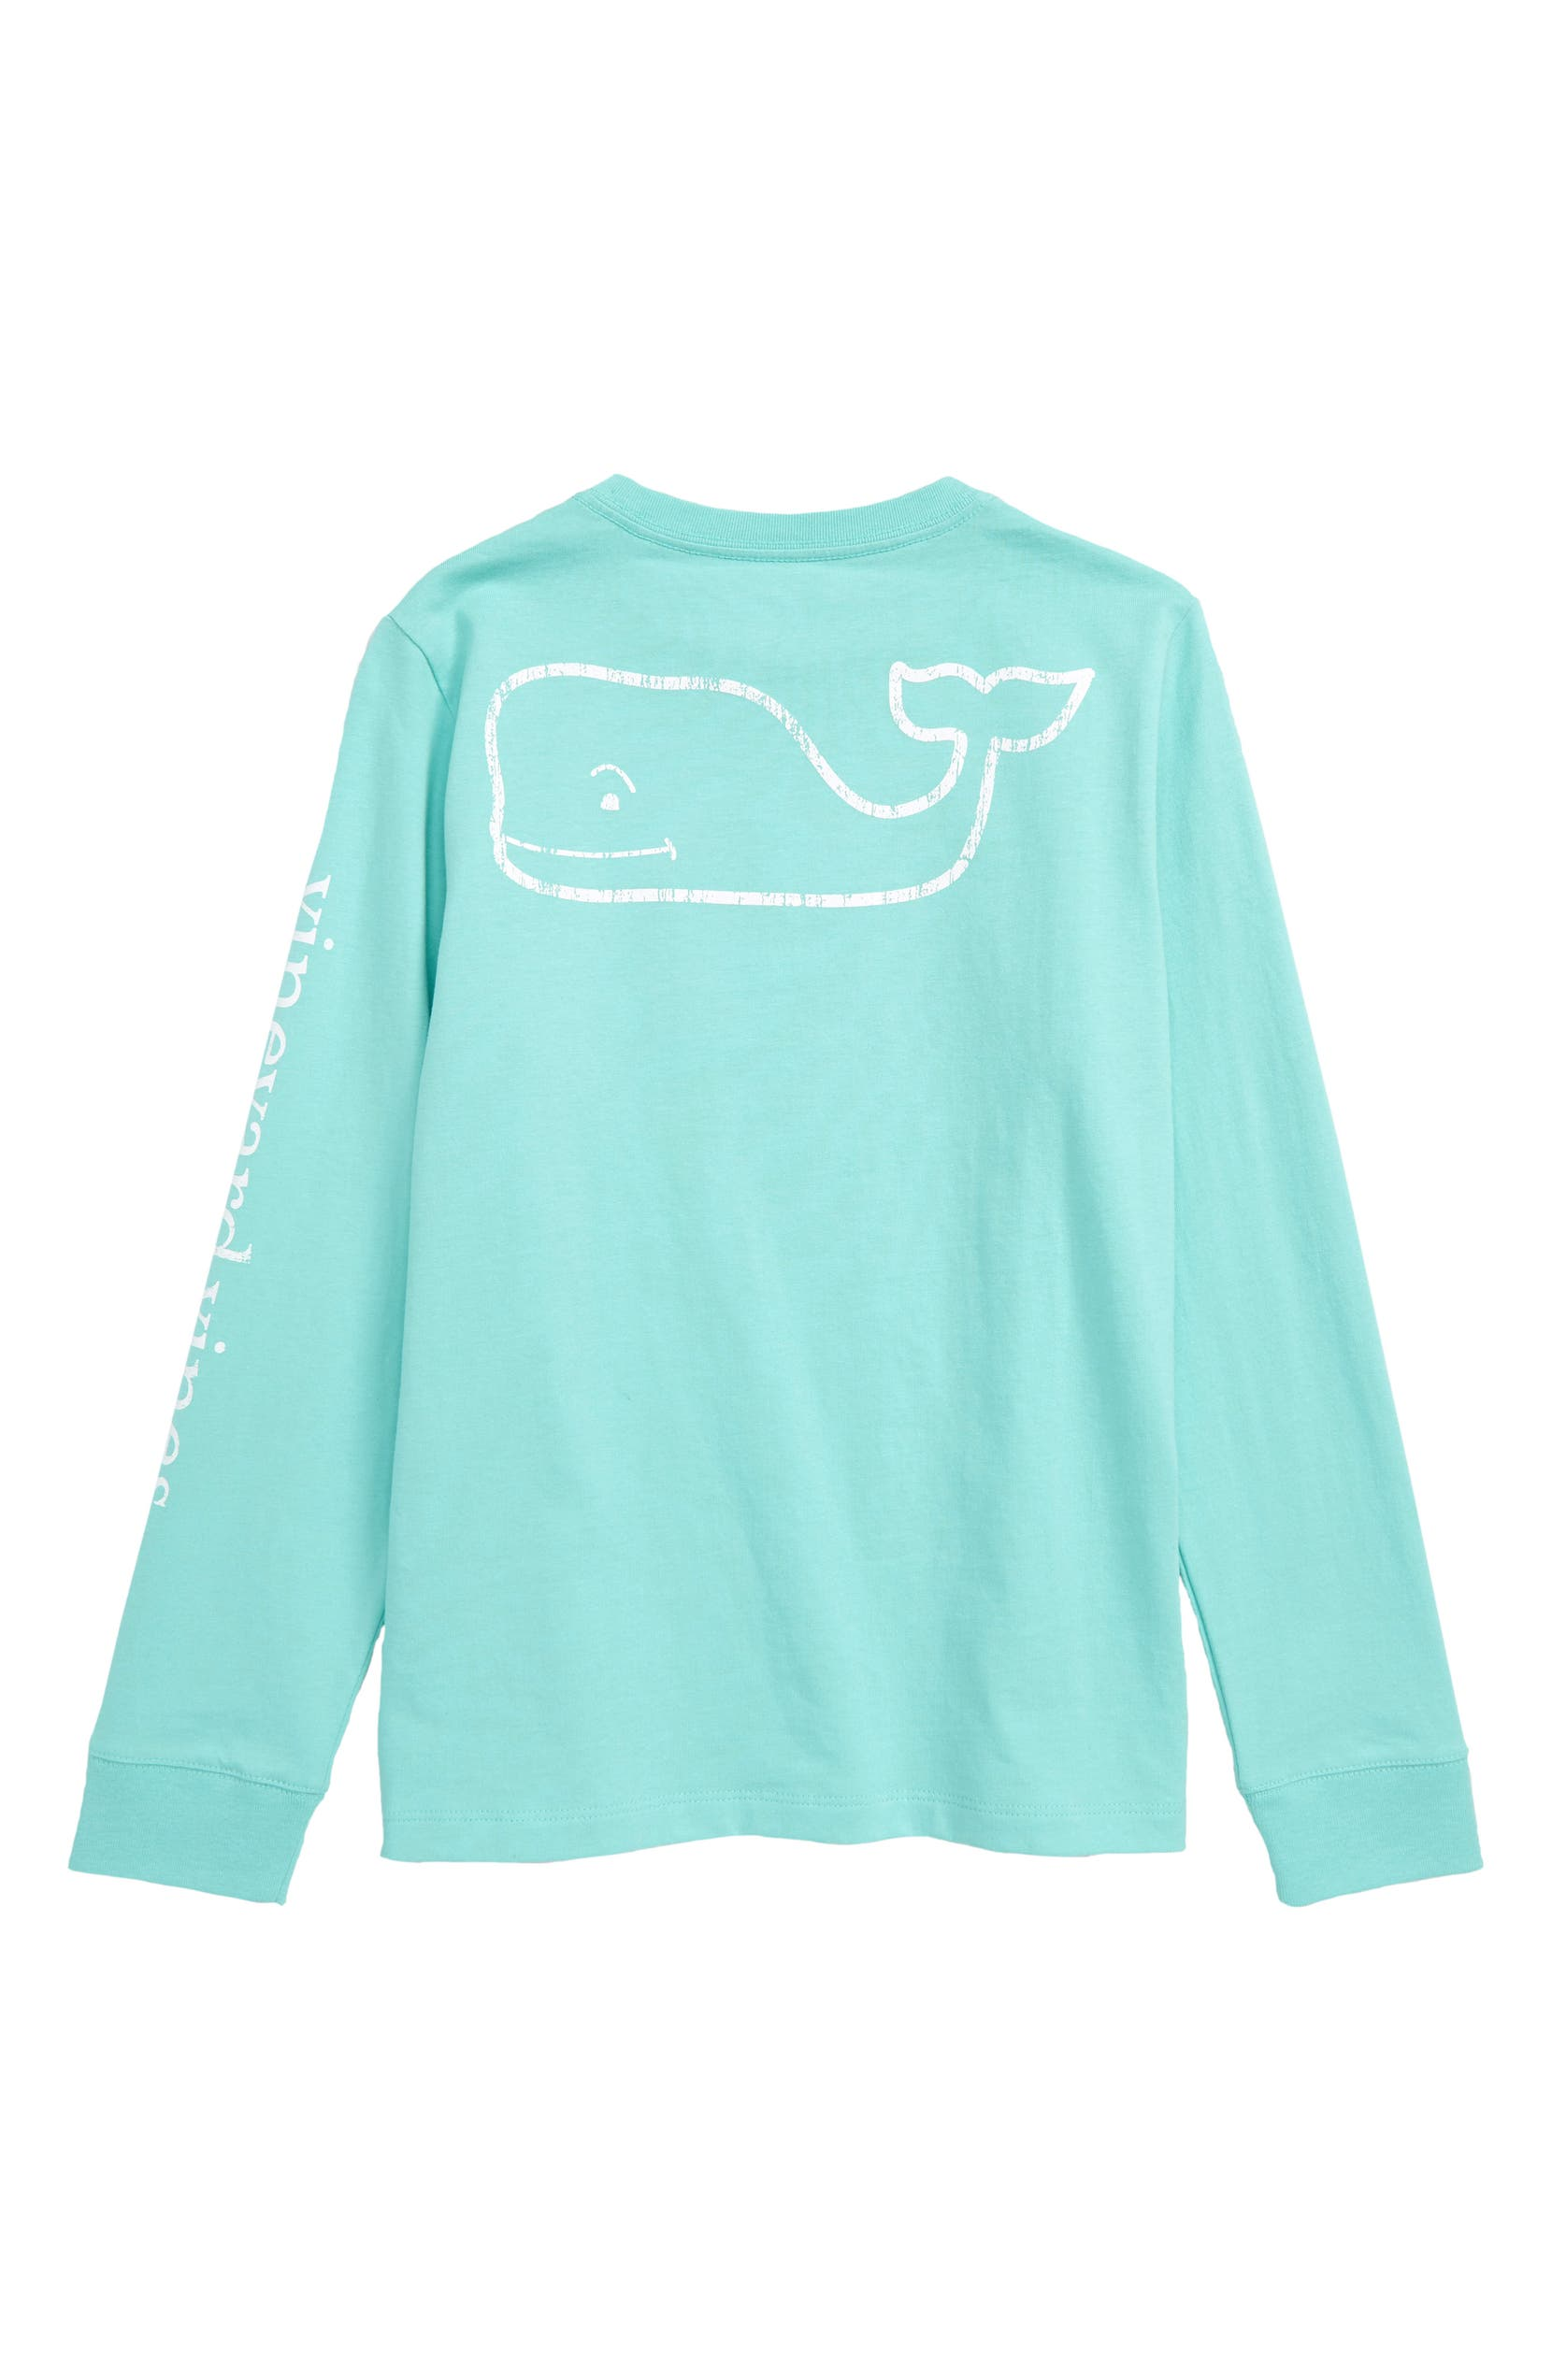 a20036fe vineyard vines Vintage Whale Graphic Long Sleeve T-Shirt (Big Boys) |  Nordstrom